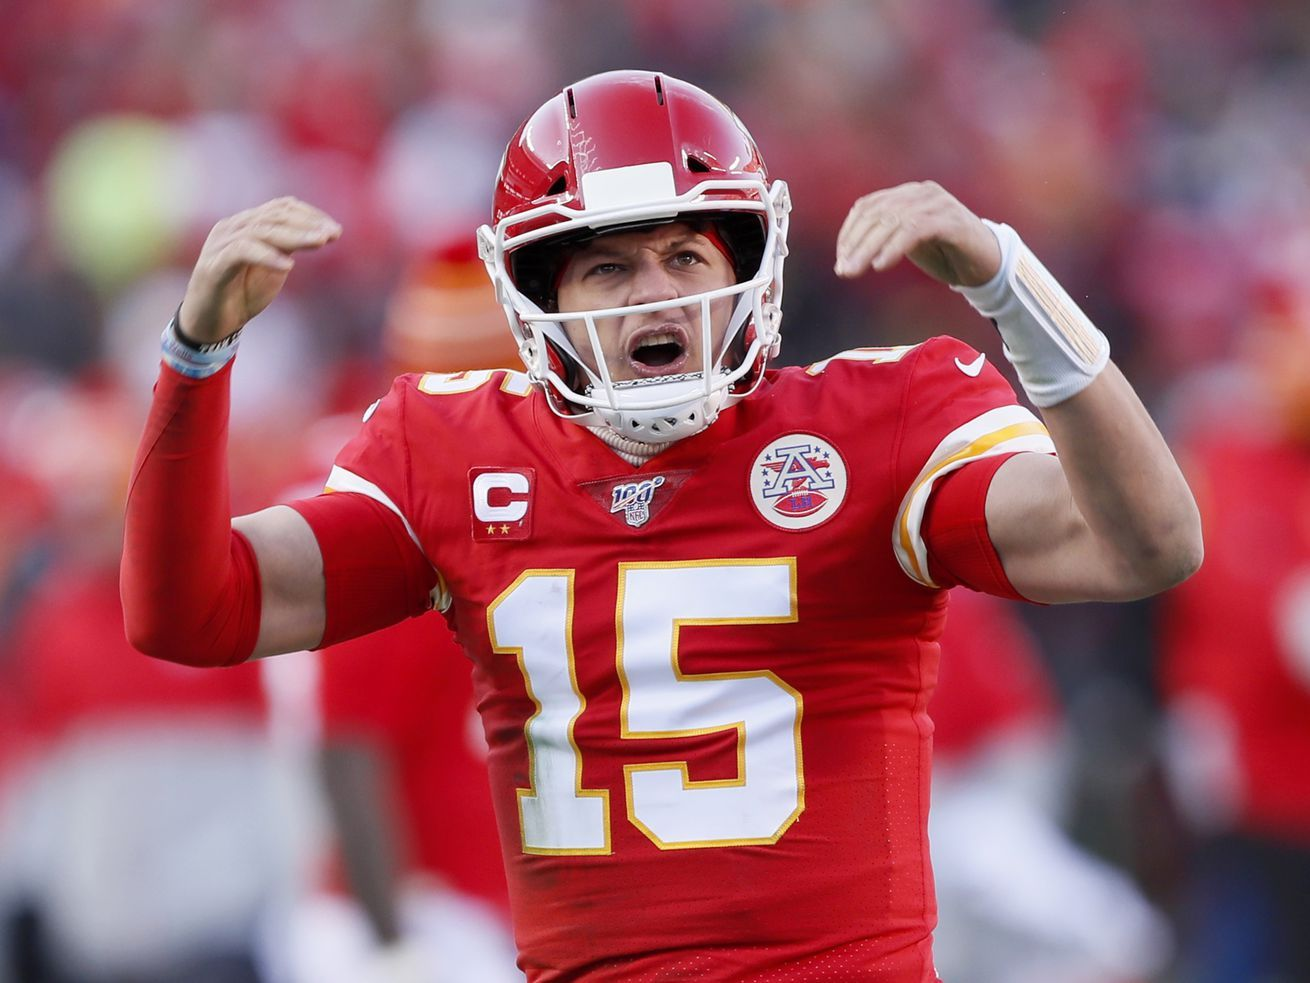 Mahomes Feet Arm Lift Chiefs To Super Bowl Over Titans In 2020 Chiefs Football Super Bowl Afc Championship